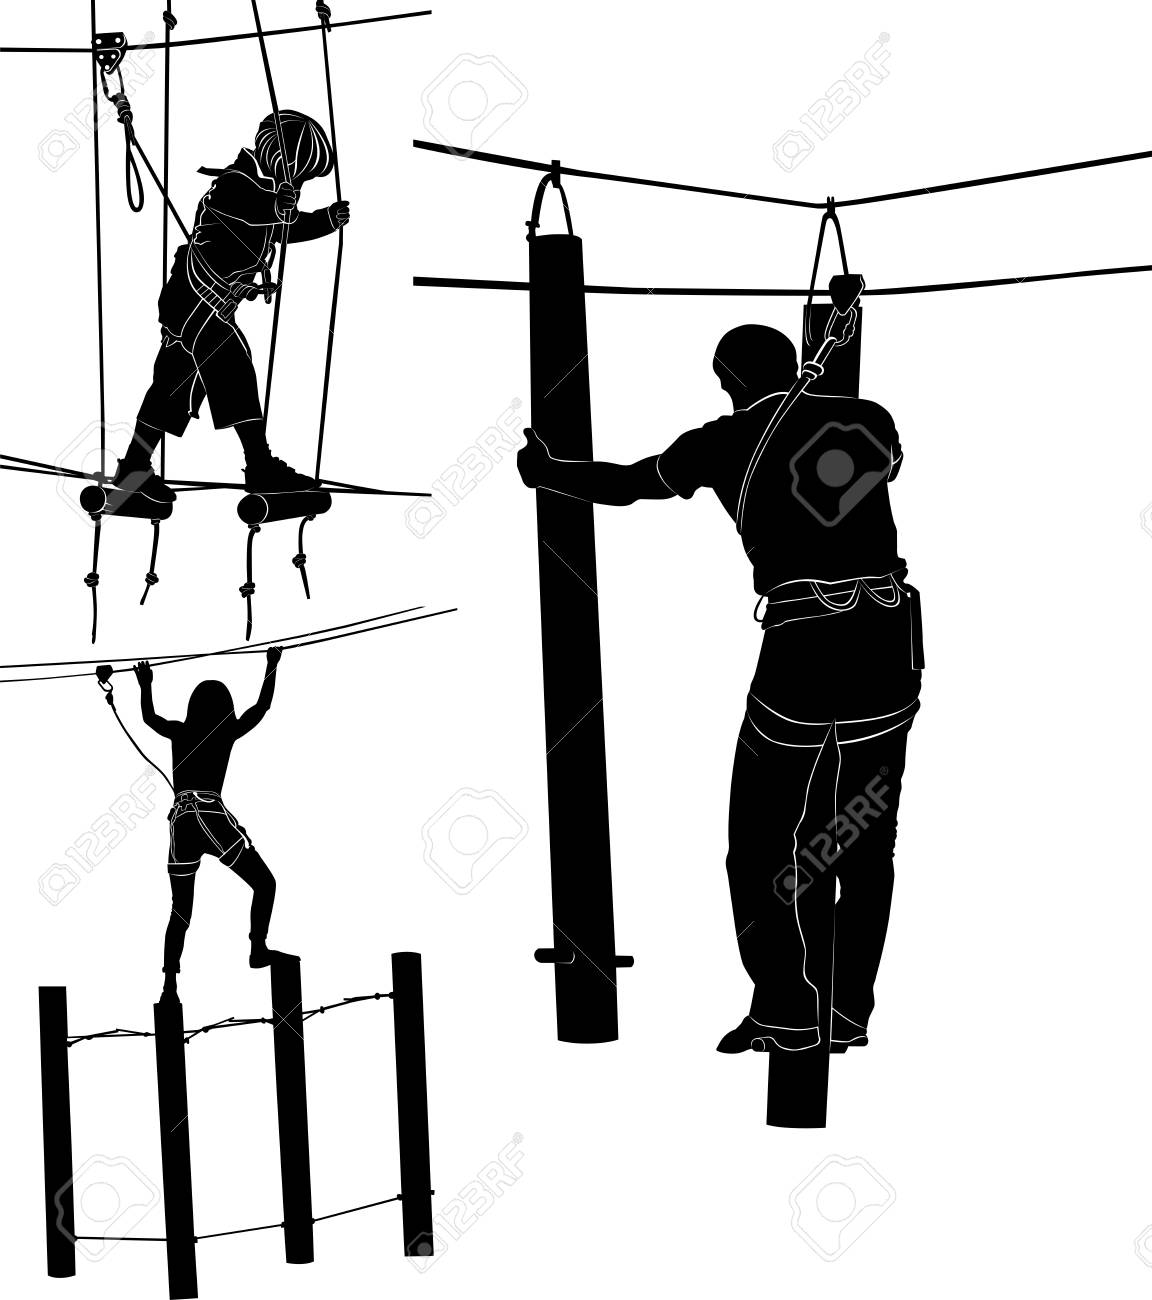 set of silhouettes in a rope park - 115346766